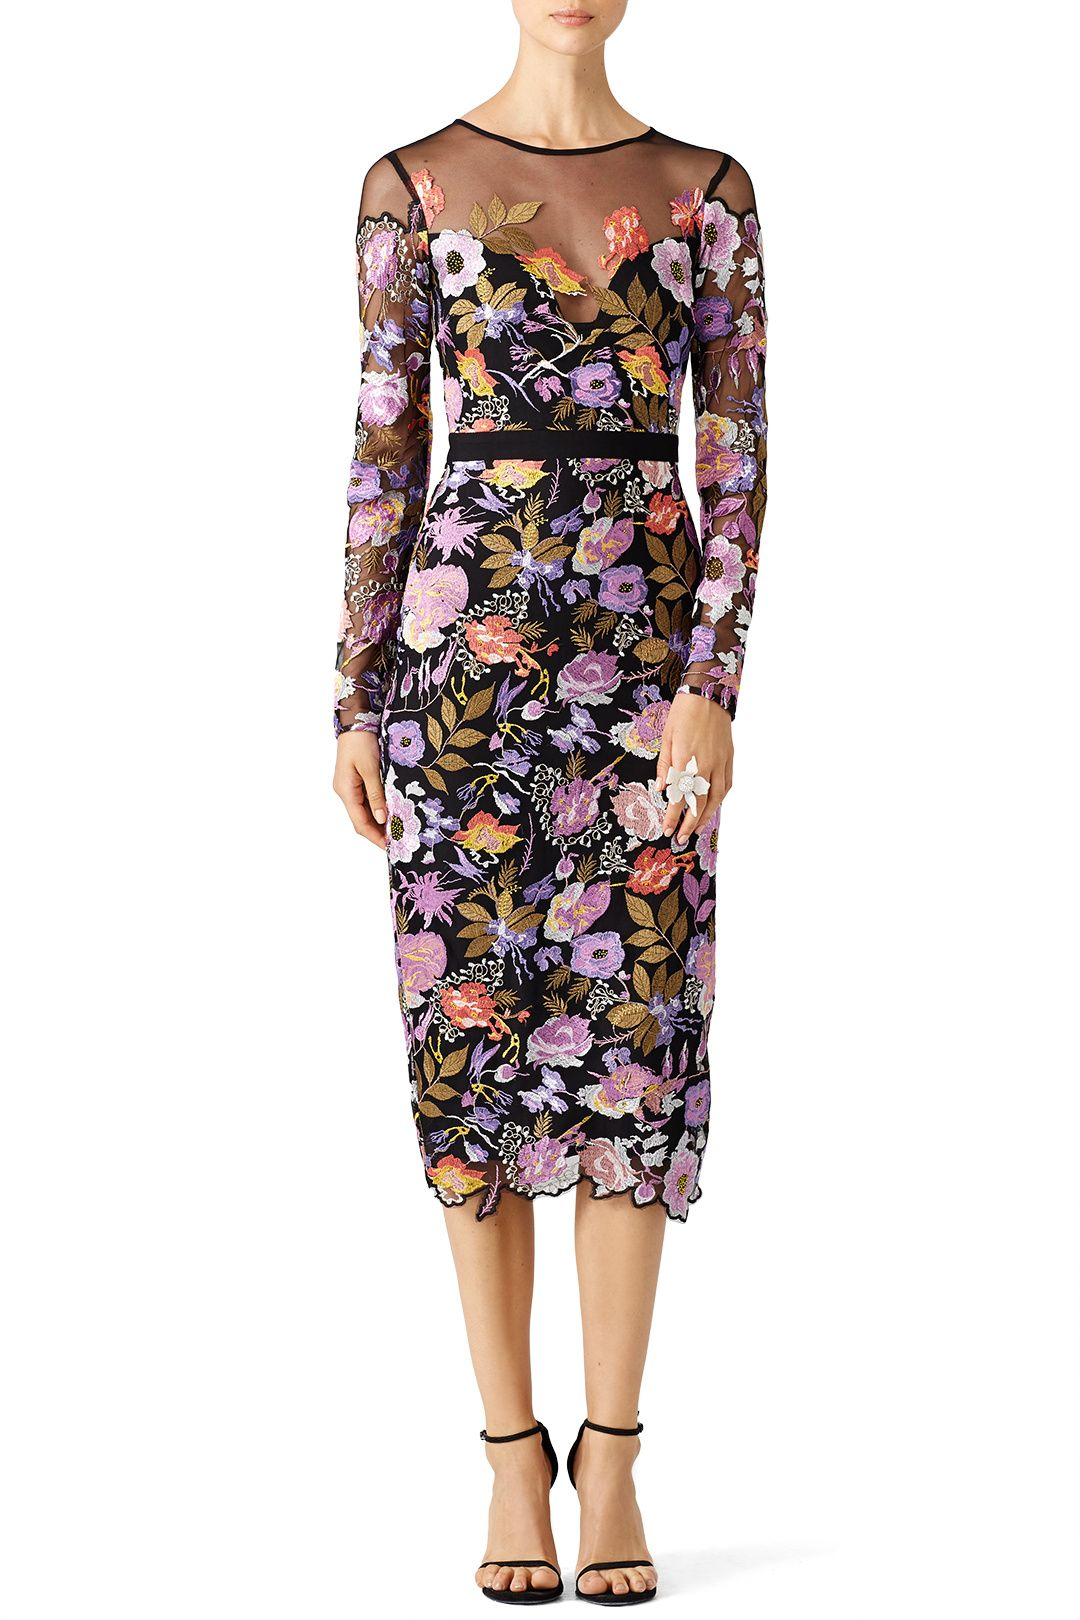 rent blossom mesh dressnicole miller for $115 - $130 only at